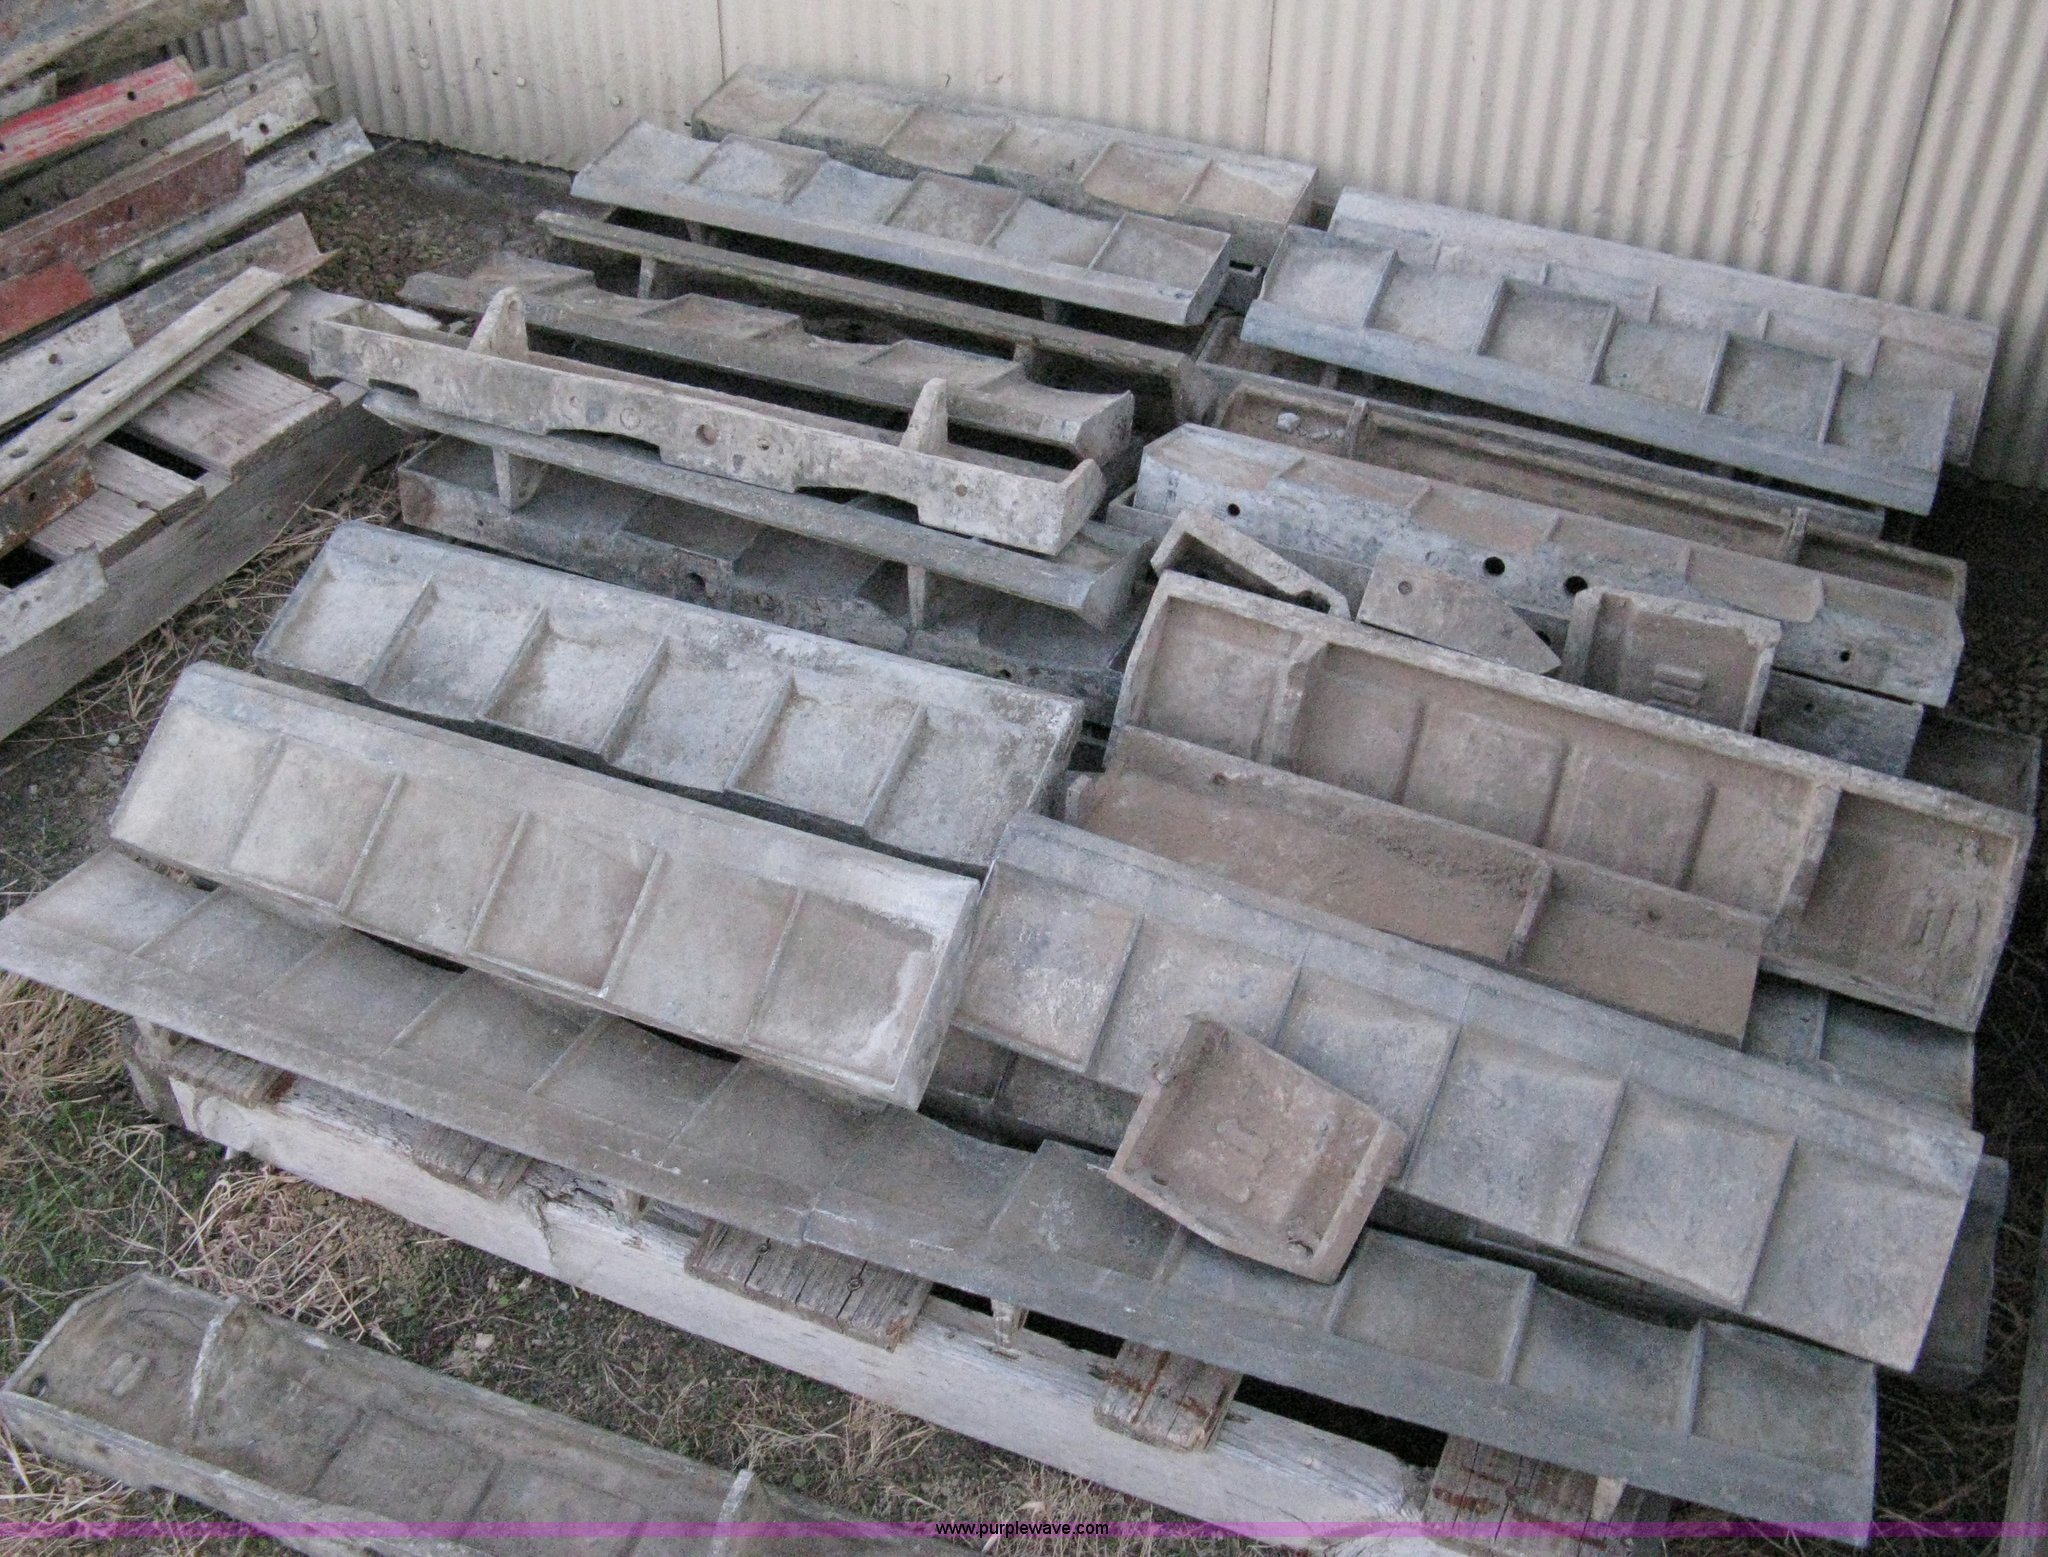 Precast Concrete Forms For Sale: Con-tech Cast Aluminum Concrete Forms